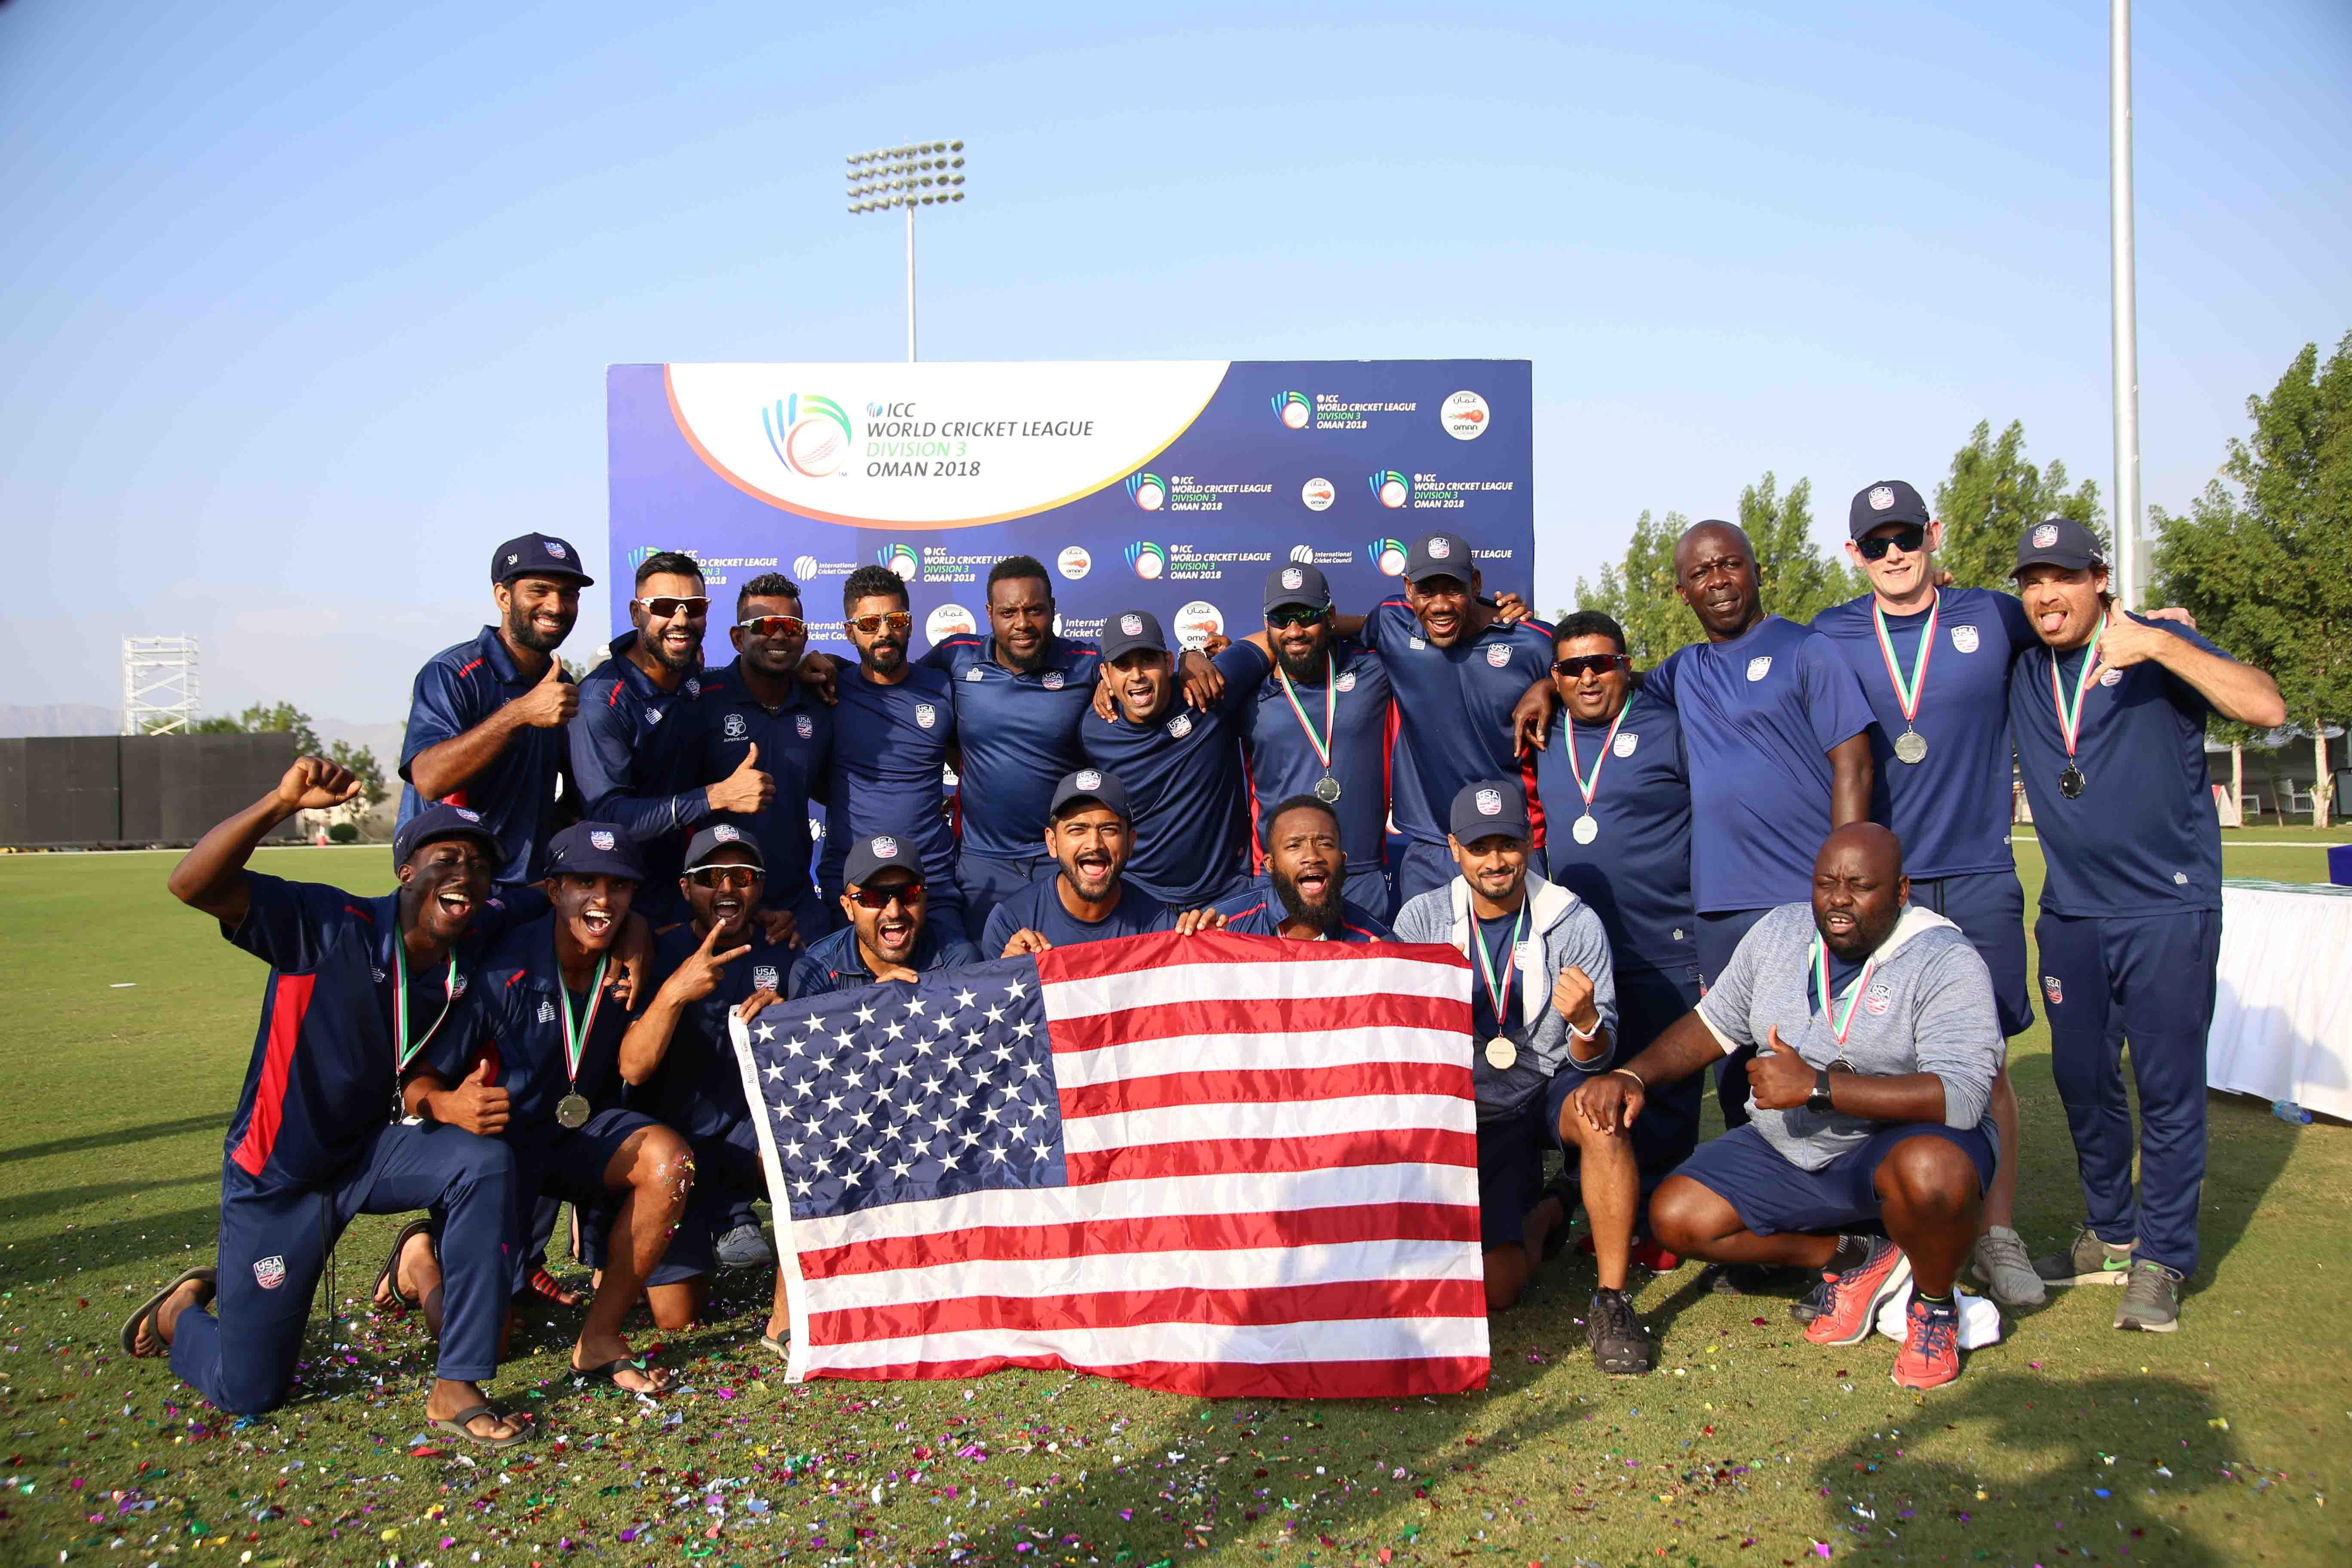 USA name squad for first-ever T20I